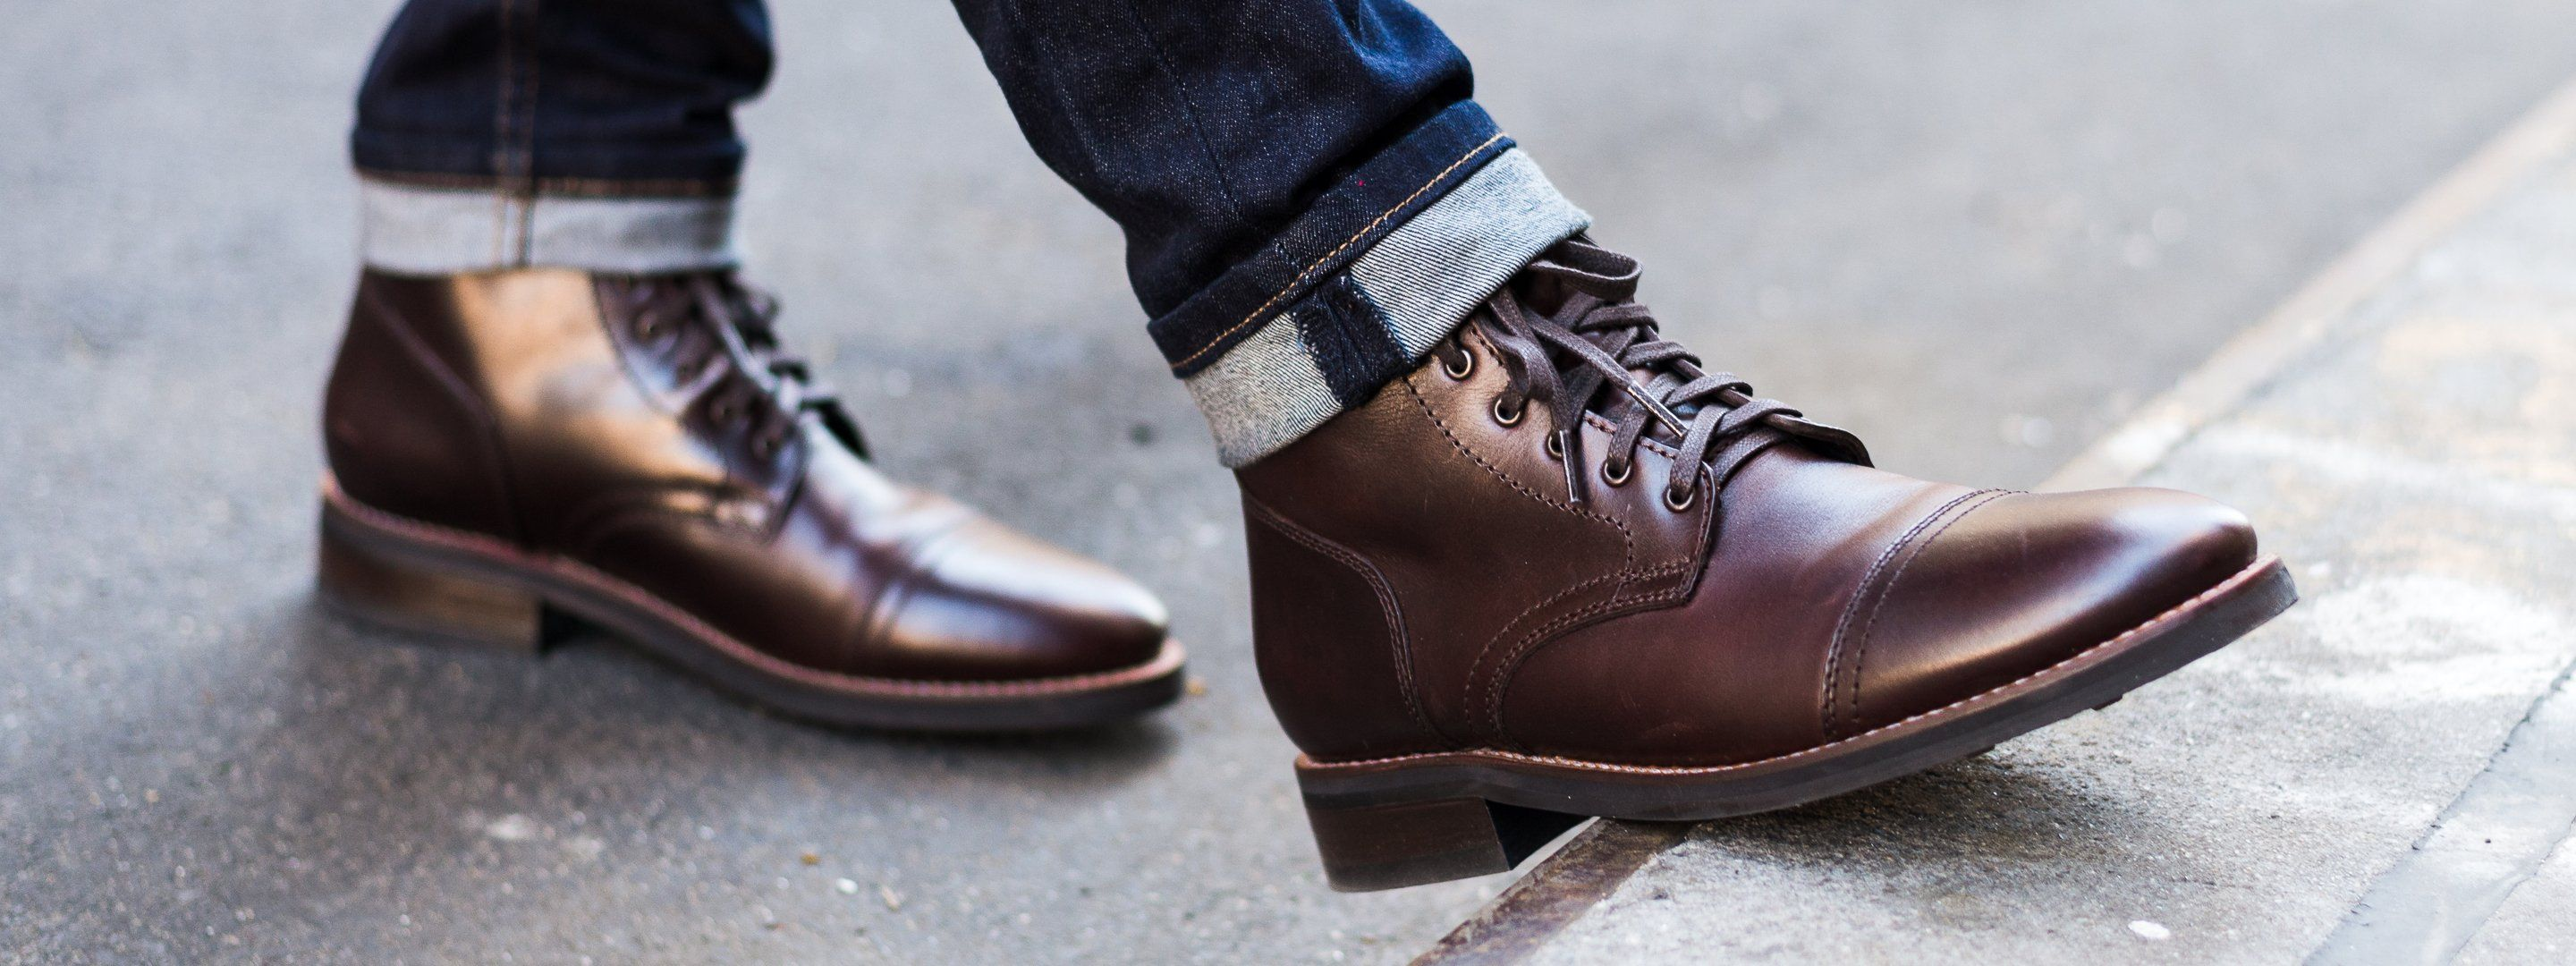 790712204b Captain | Brown in 2019 | Clothing ideas | Brown boots, Shoe boots ...